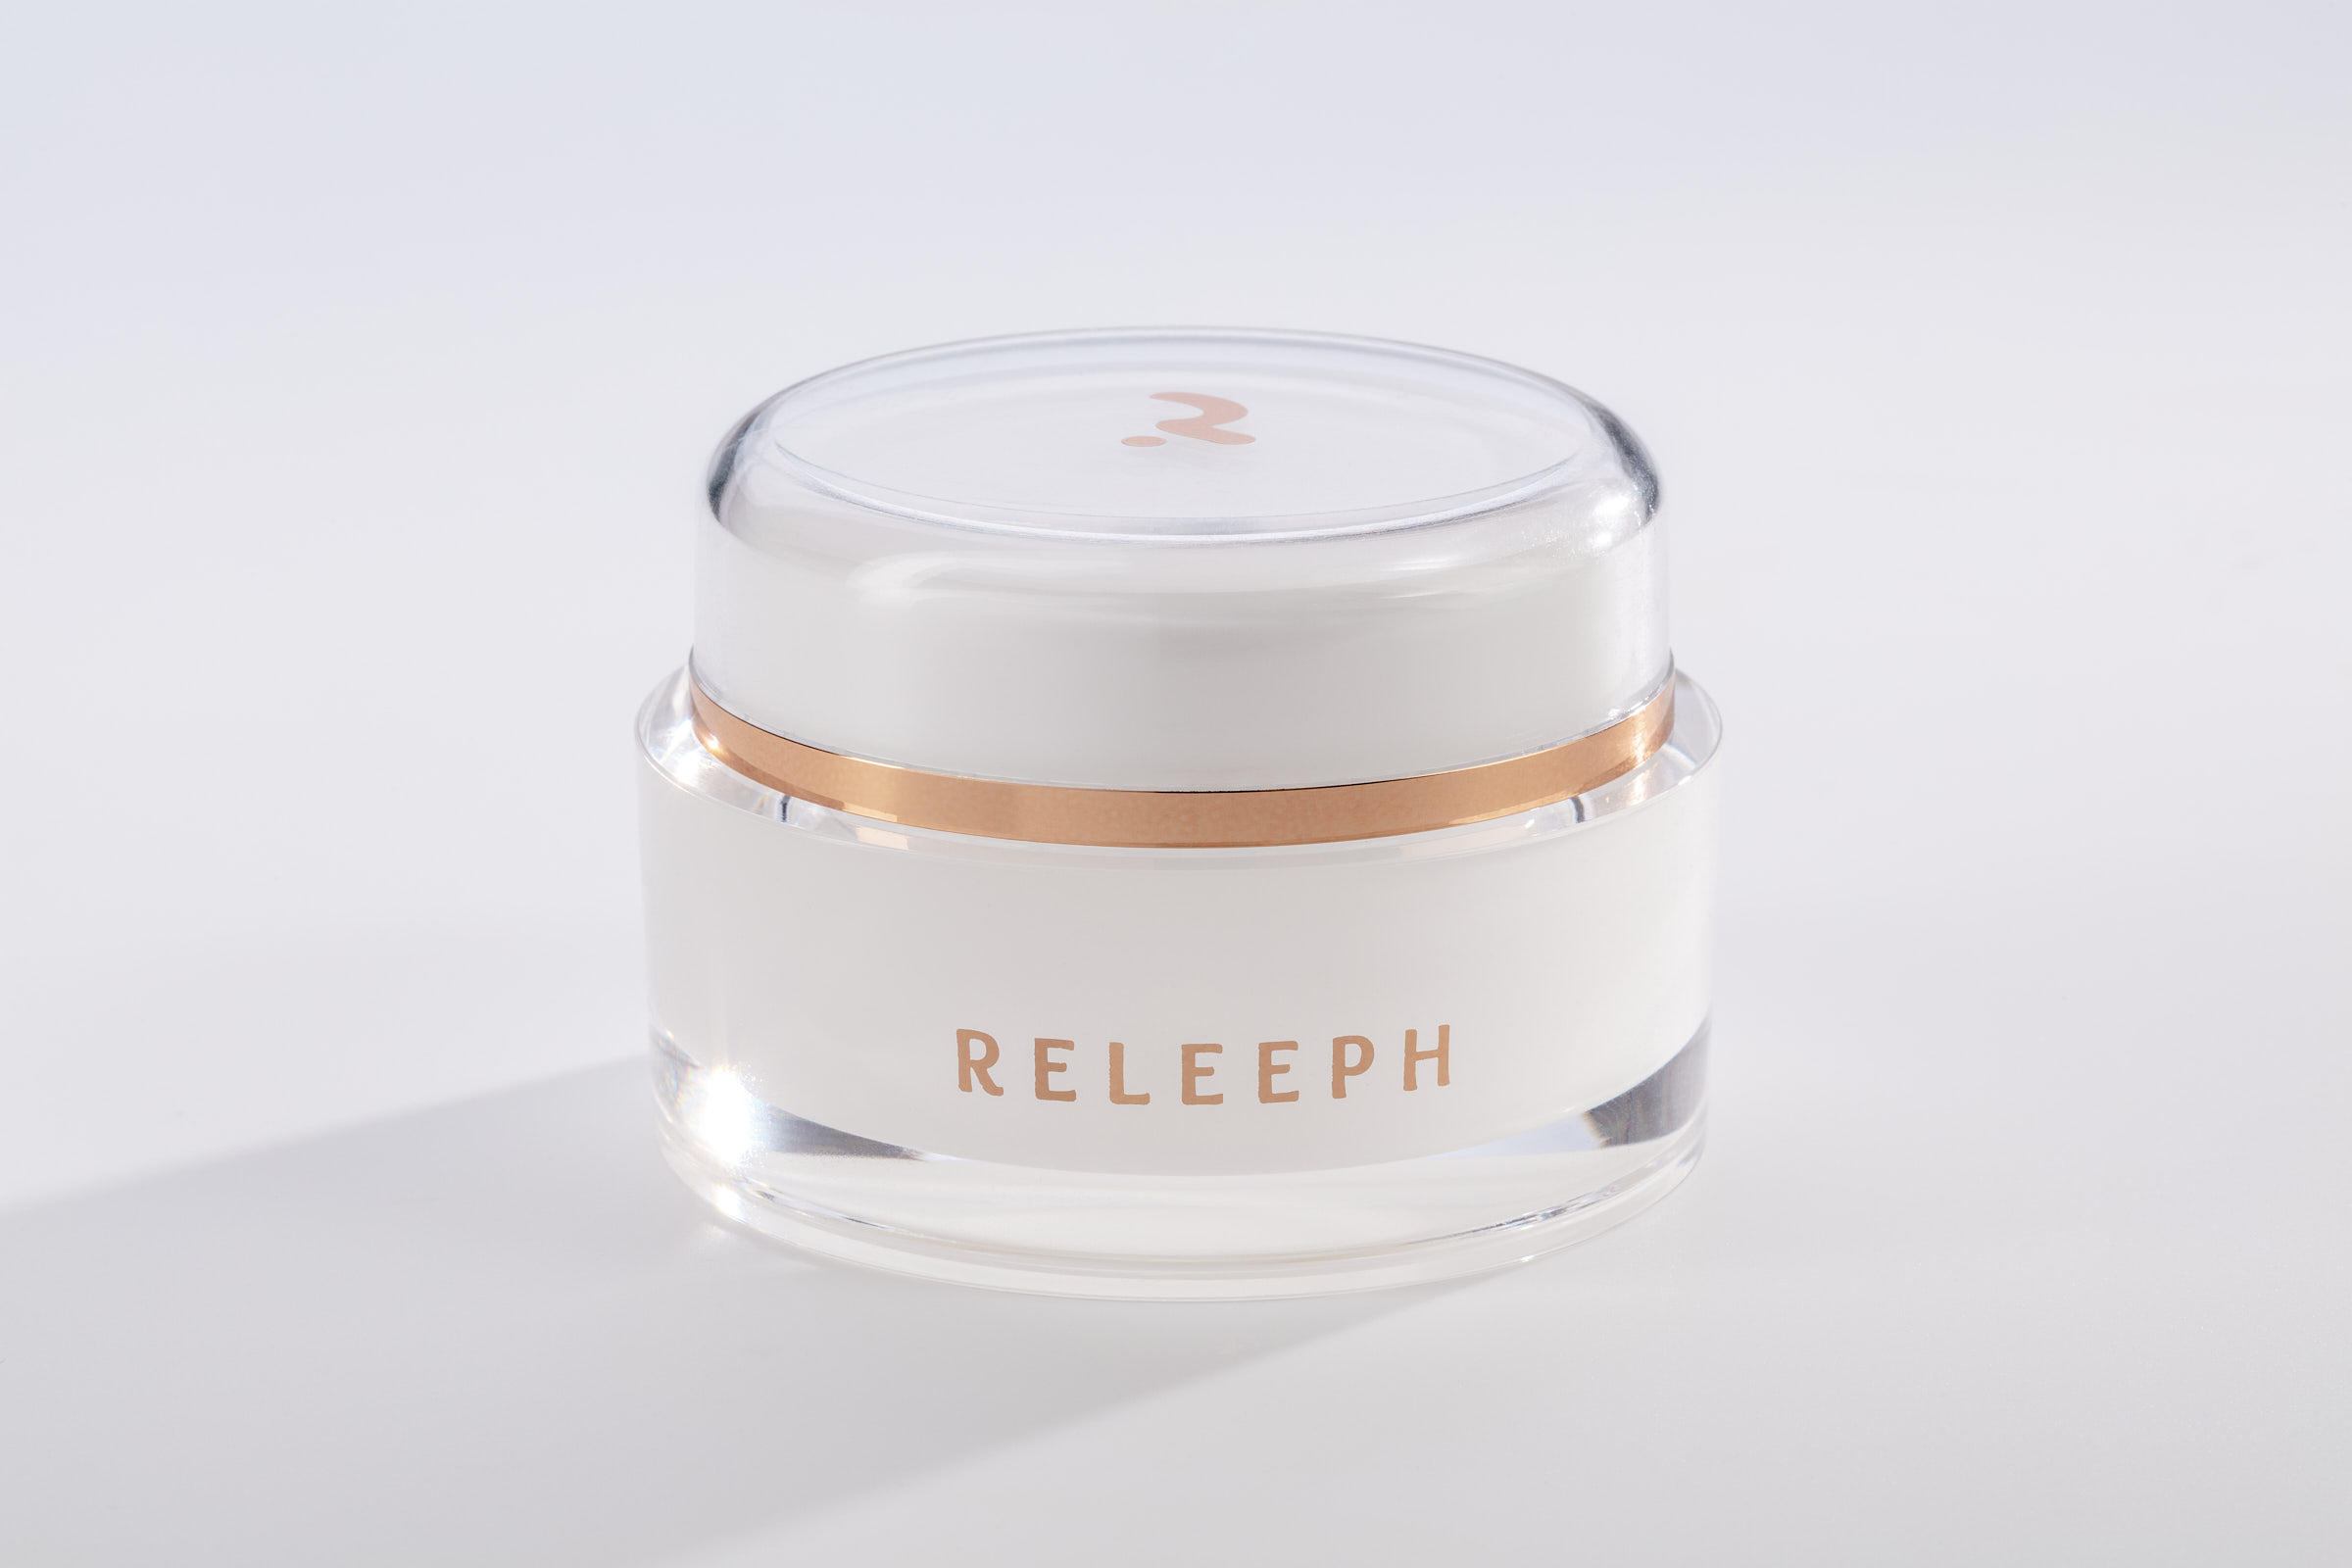 Releeph Cream Solo main front view_Advertising product photography